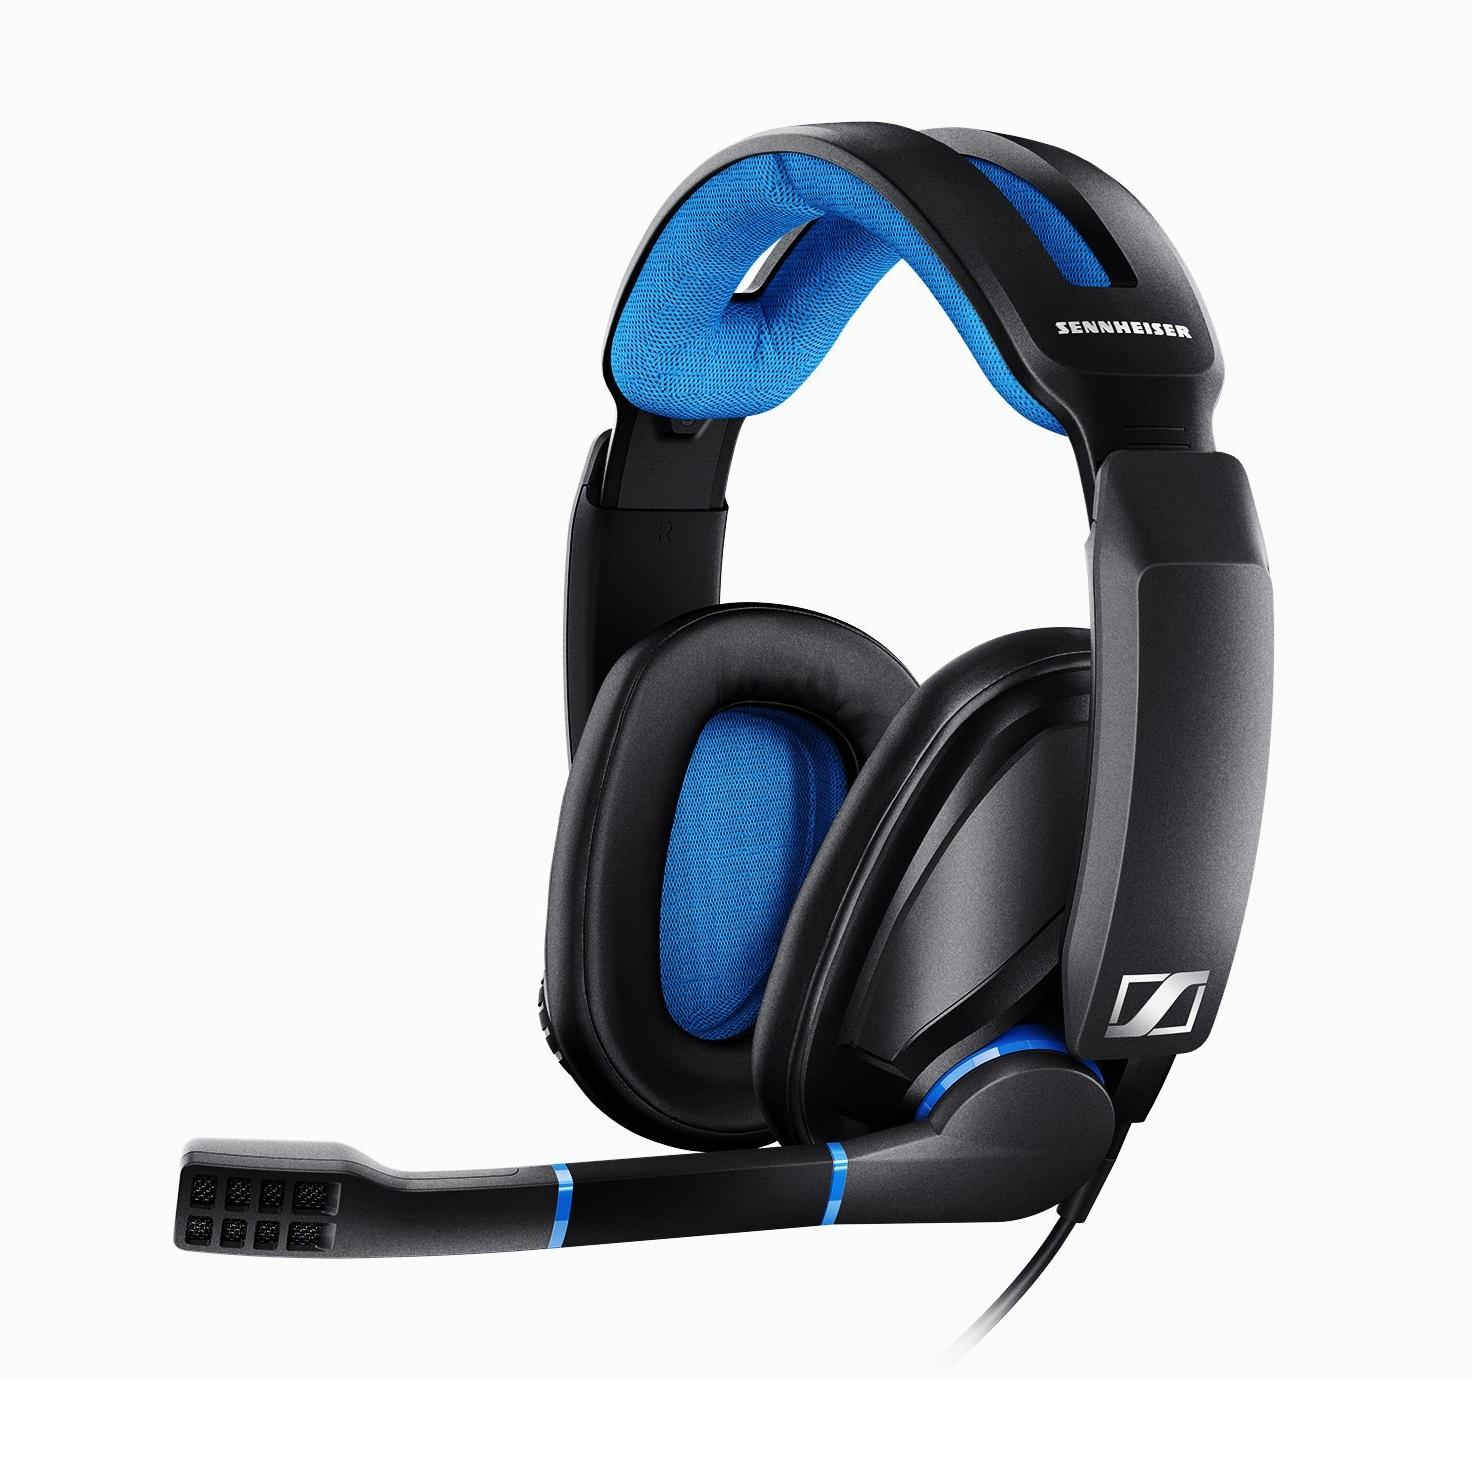 68a3cca5652 Sennheiser GSP 300 Closed Back Gaming Headset for PC, Mac, PS4 and Xbox One